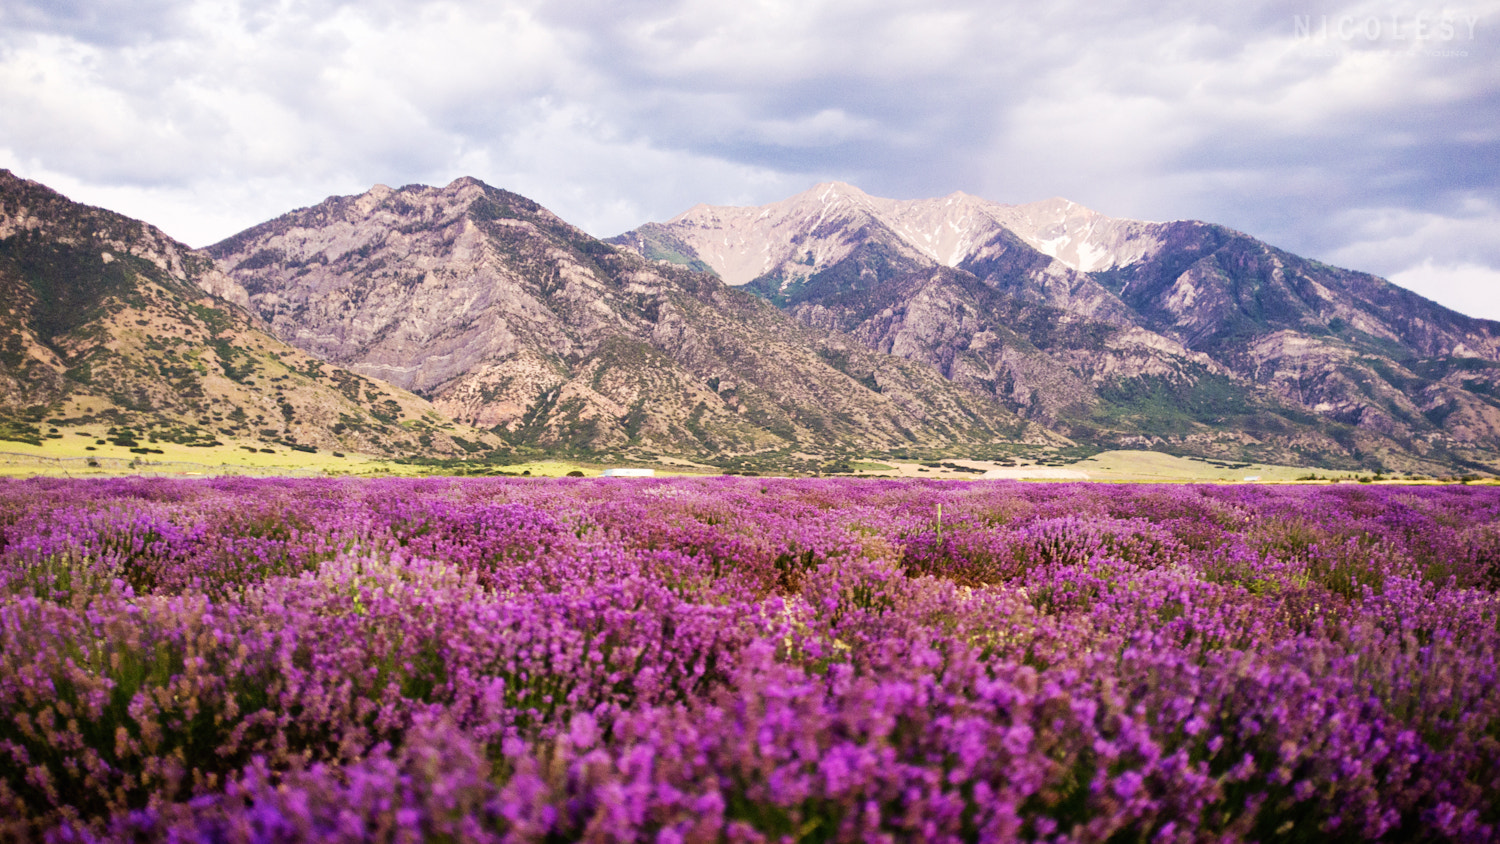 Photograph Lavender Fields by Nicole S. Young on 500px